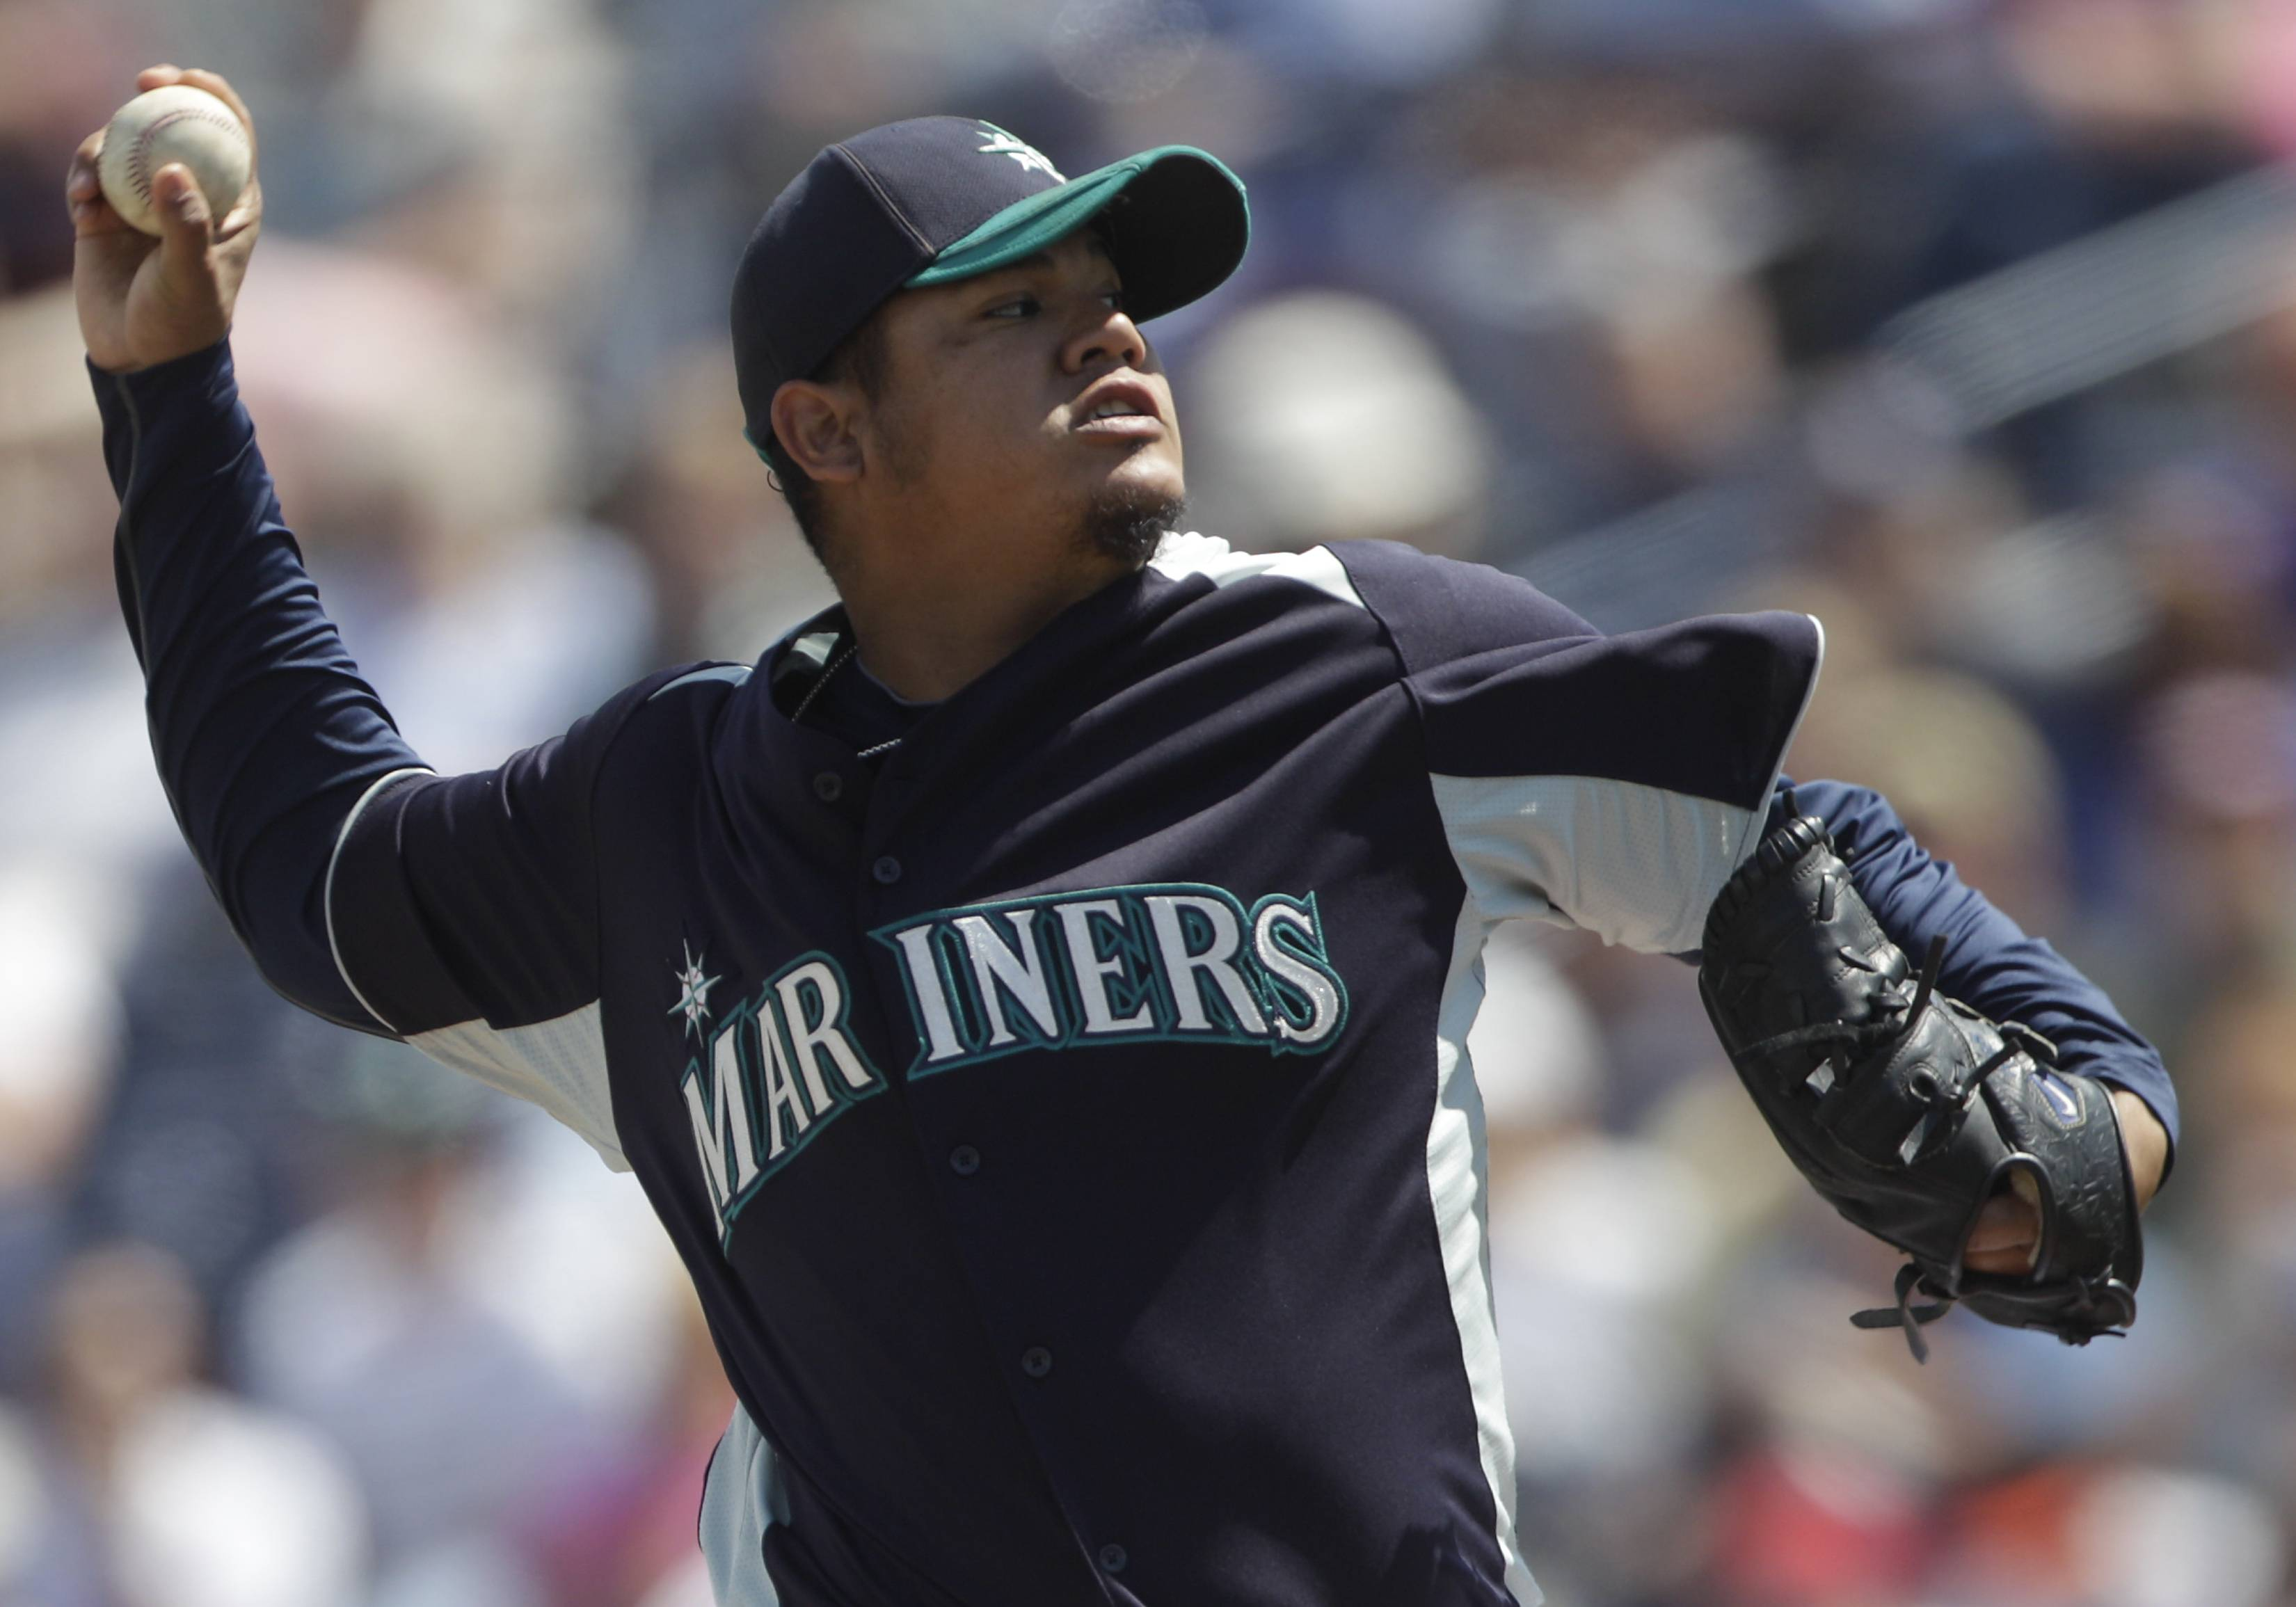 Seattle Mariners starting pitcher Felix Hernandez works in the second inning against the White Sox Tuesday.